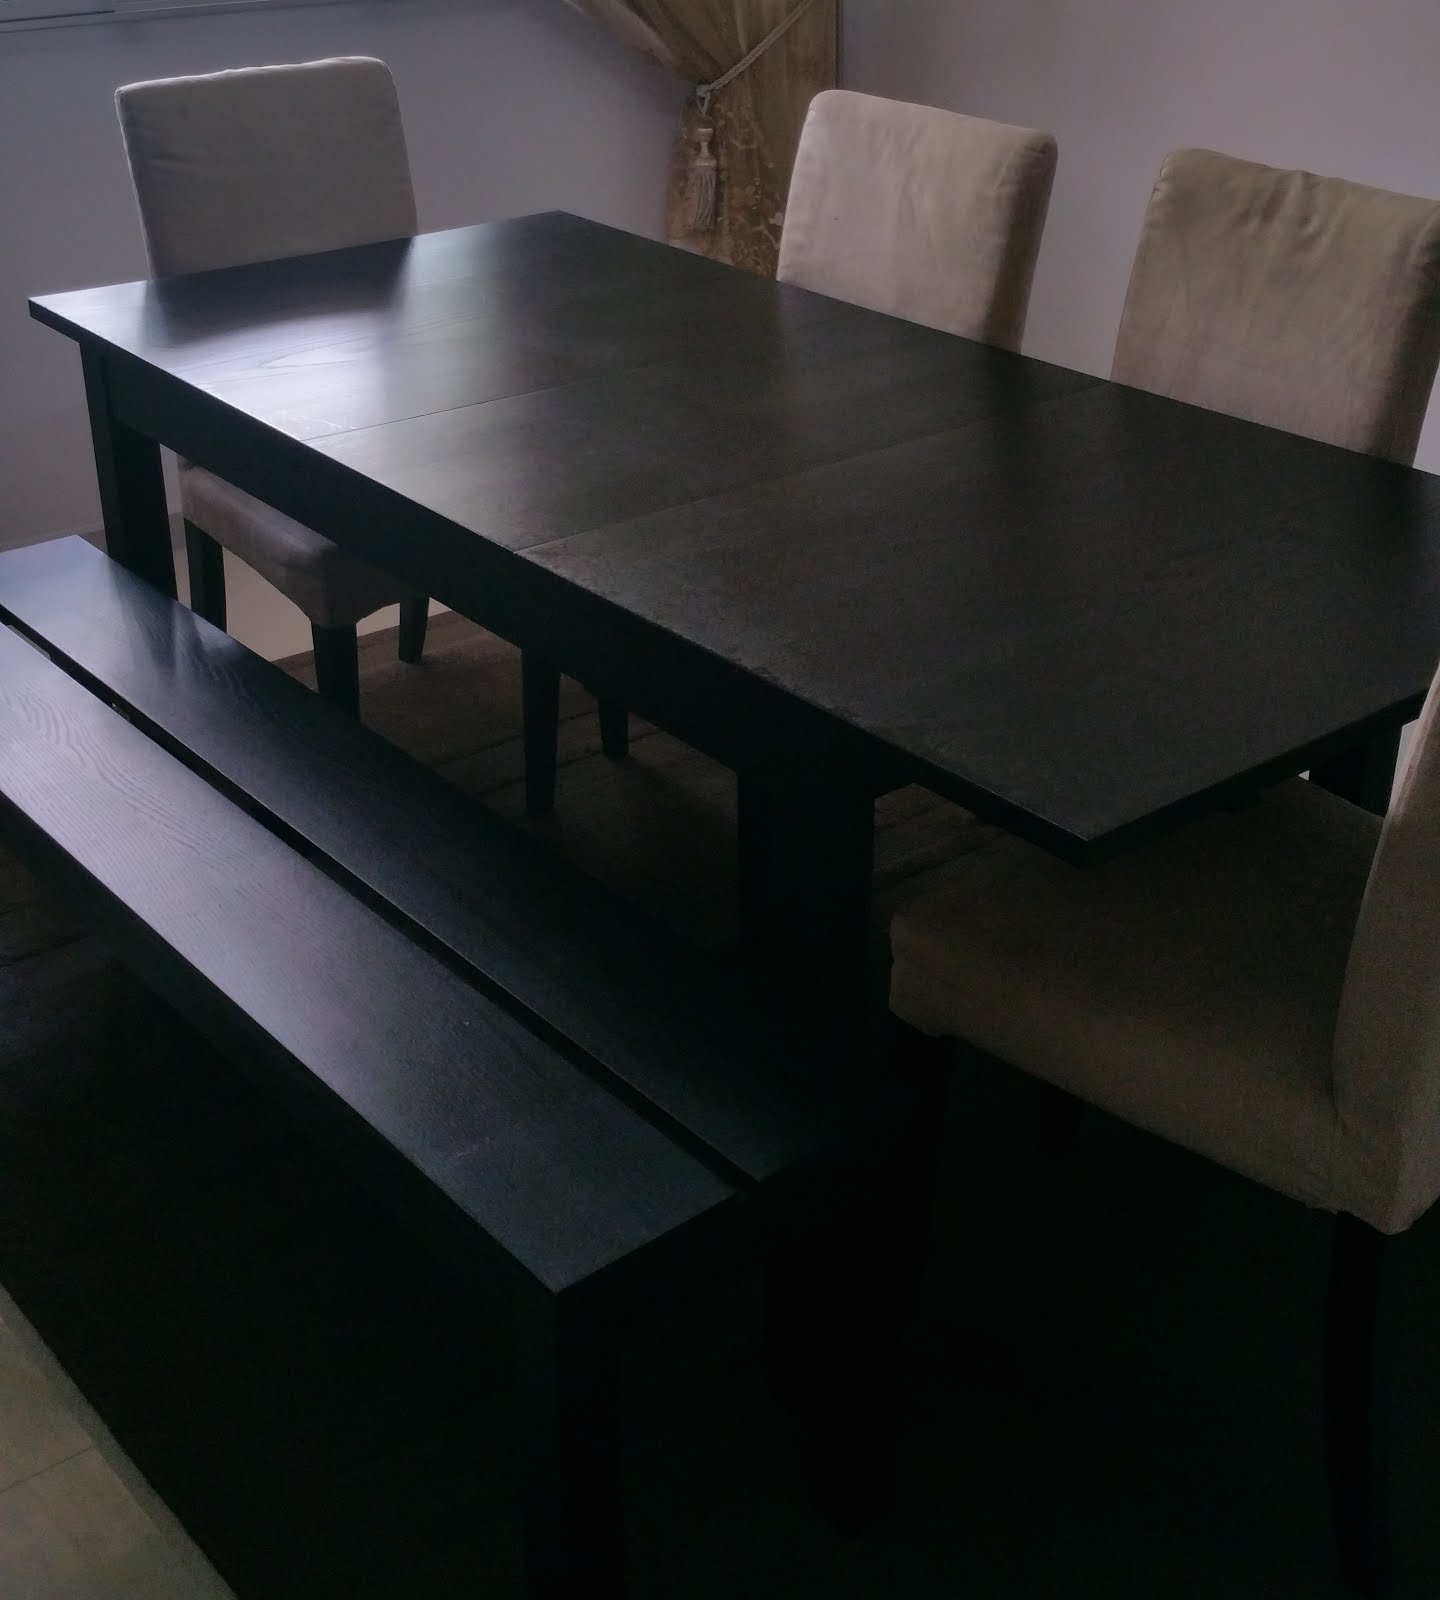 Only Serious Buyers: [SOLD] IKEA Dining Furnitures @ $250